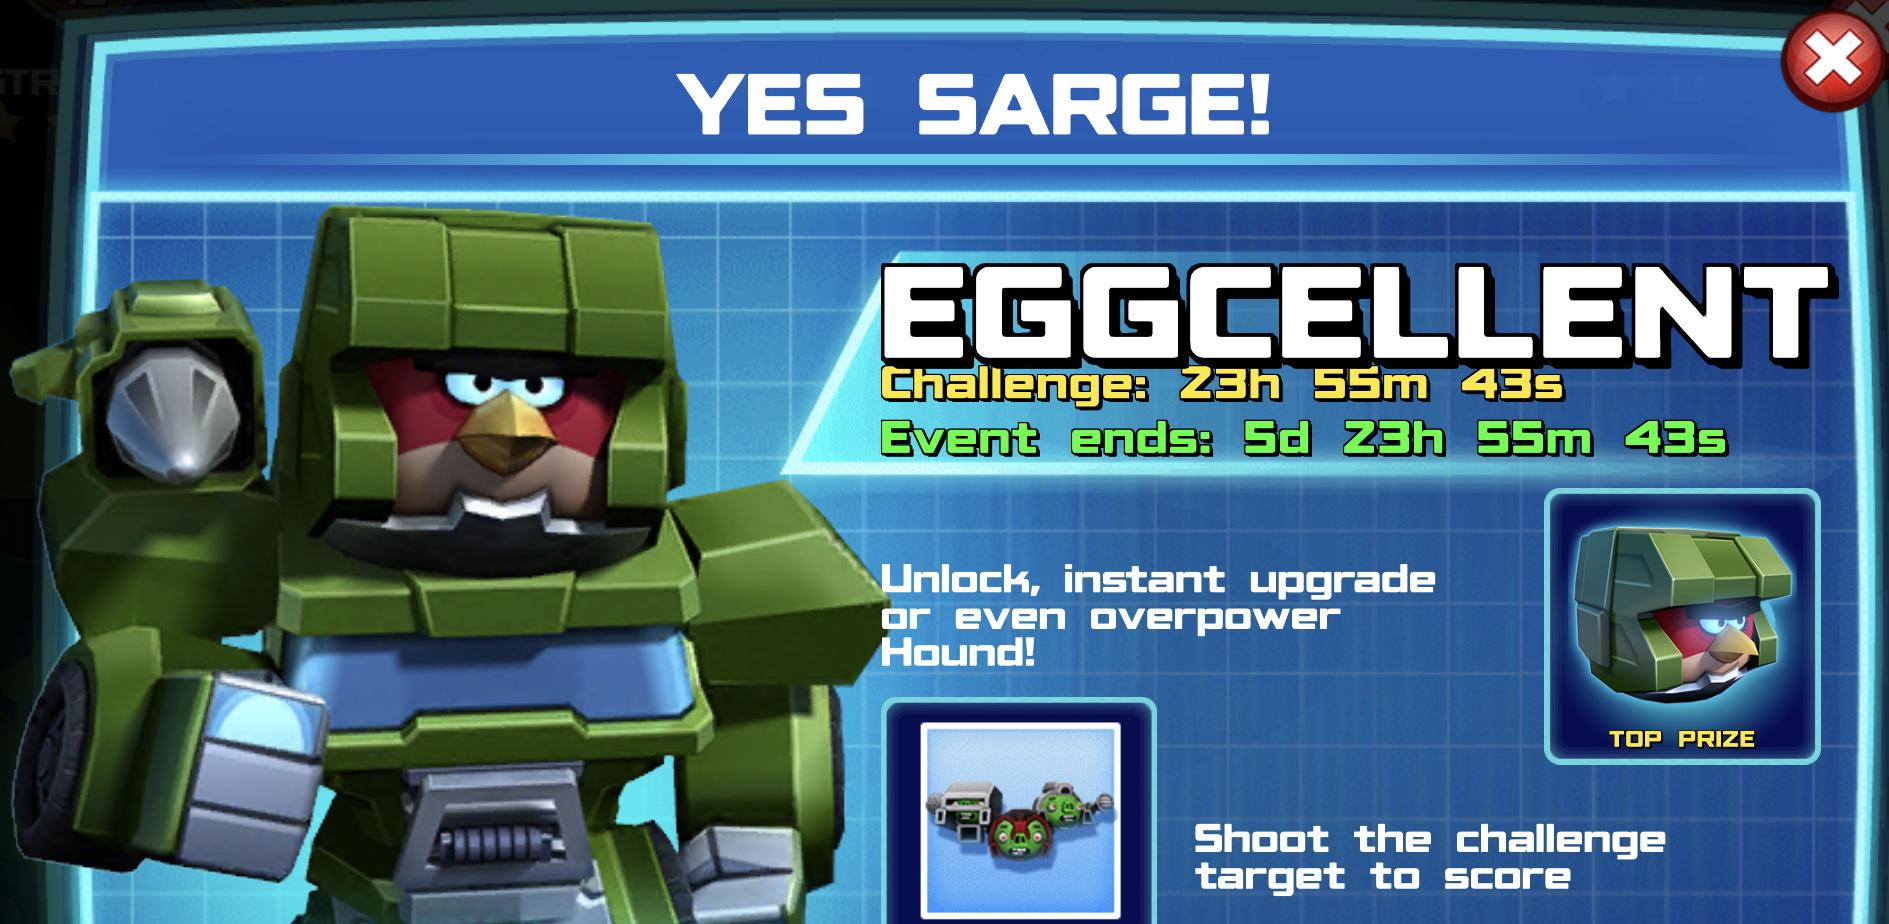 The event banner for Yes Sarge!